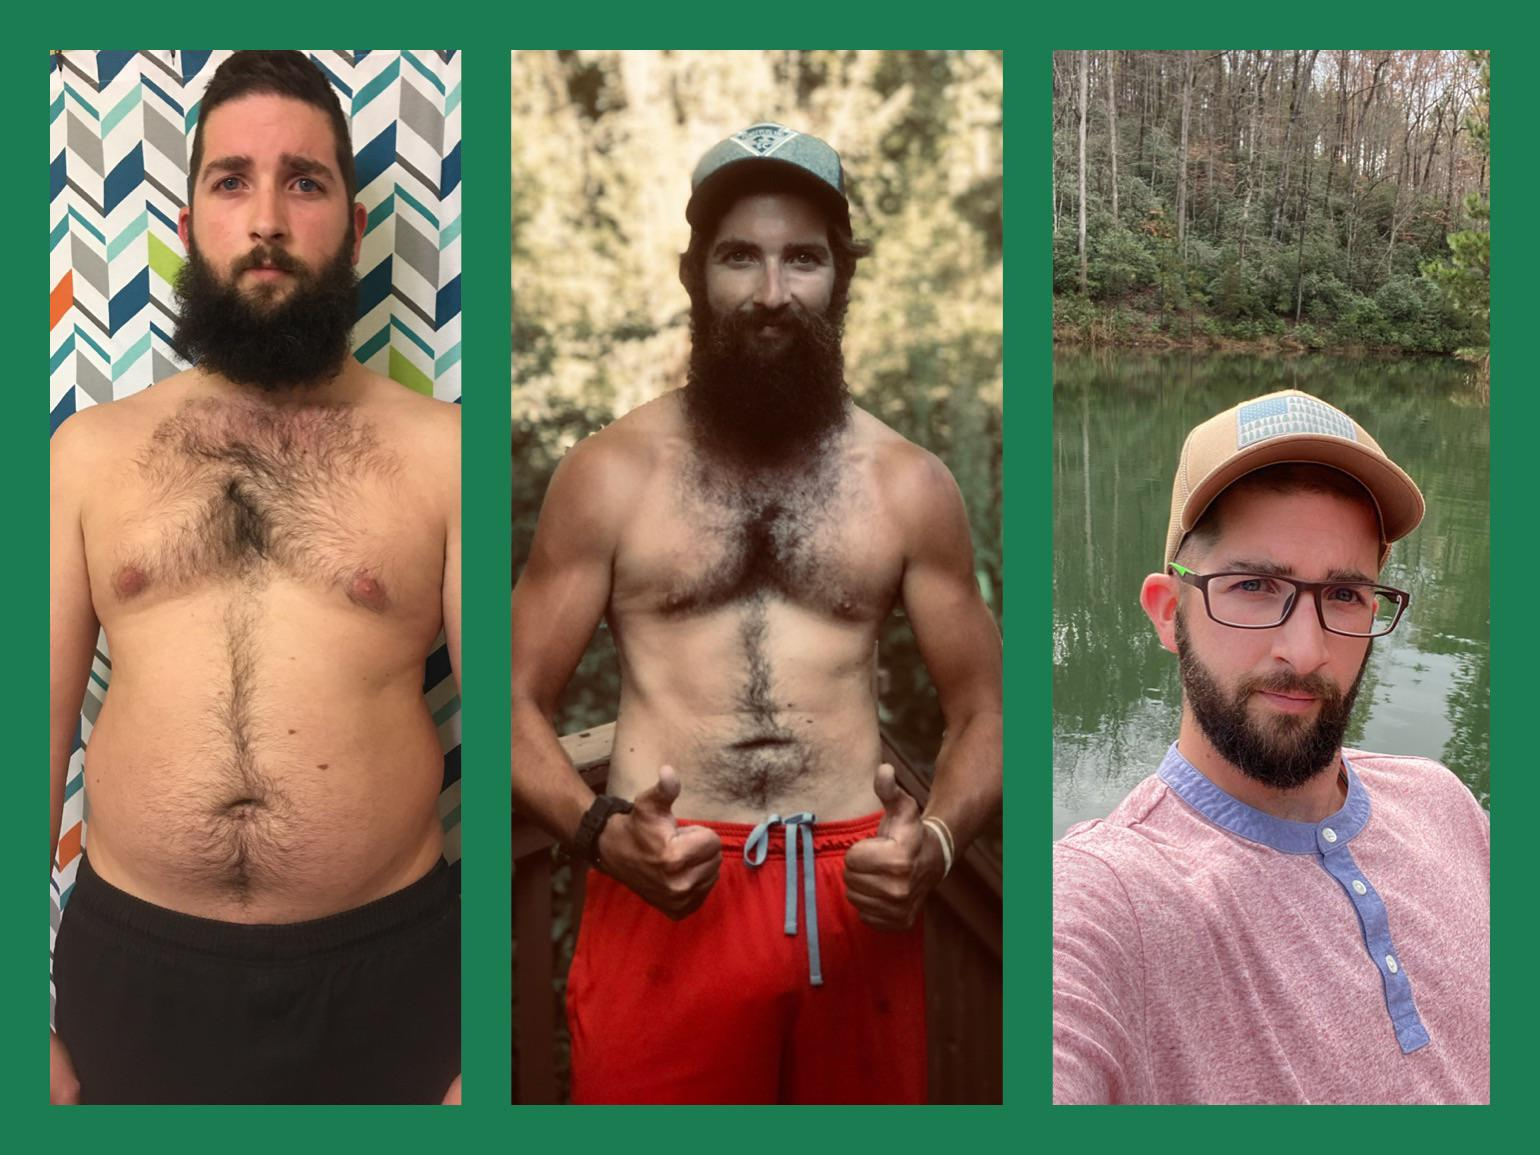 Before and After 73 lbs Weight Loss 5 foot 10 Male 220 lbs to 147 lbs